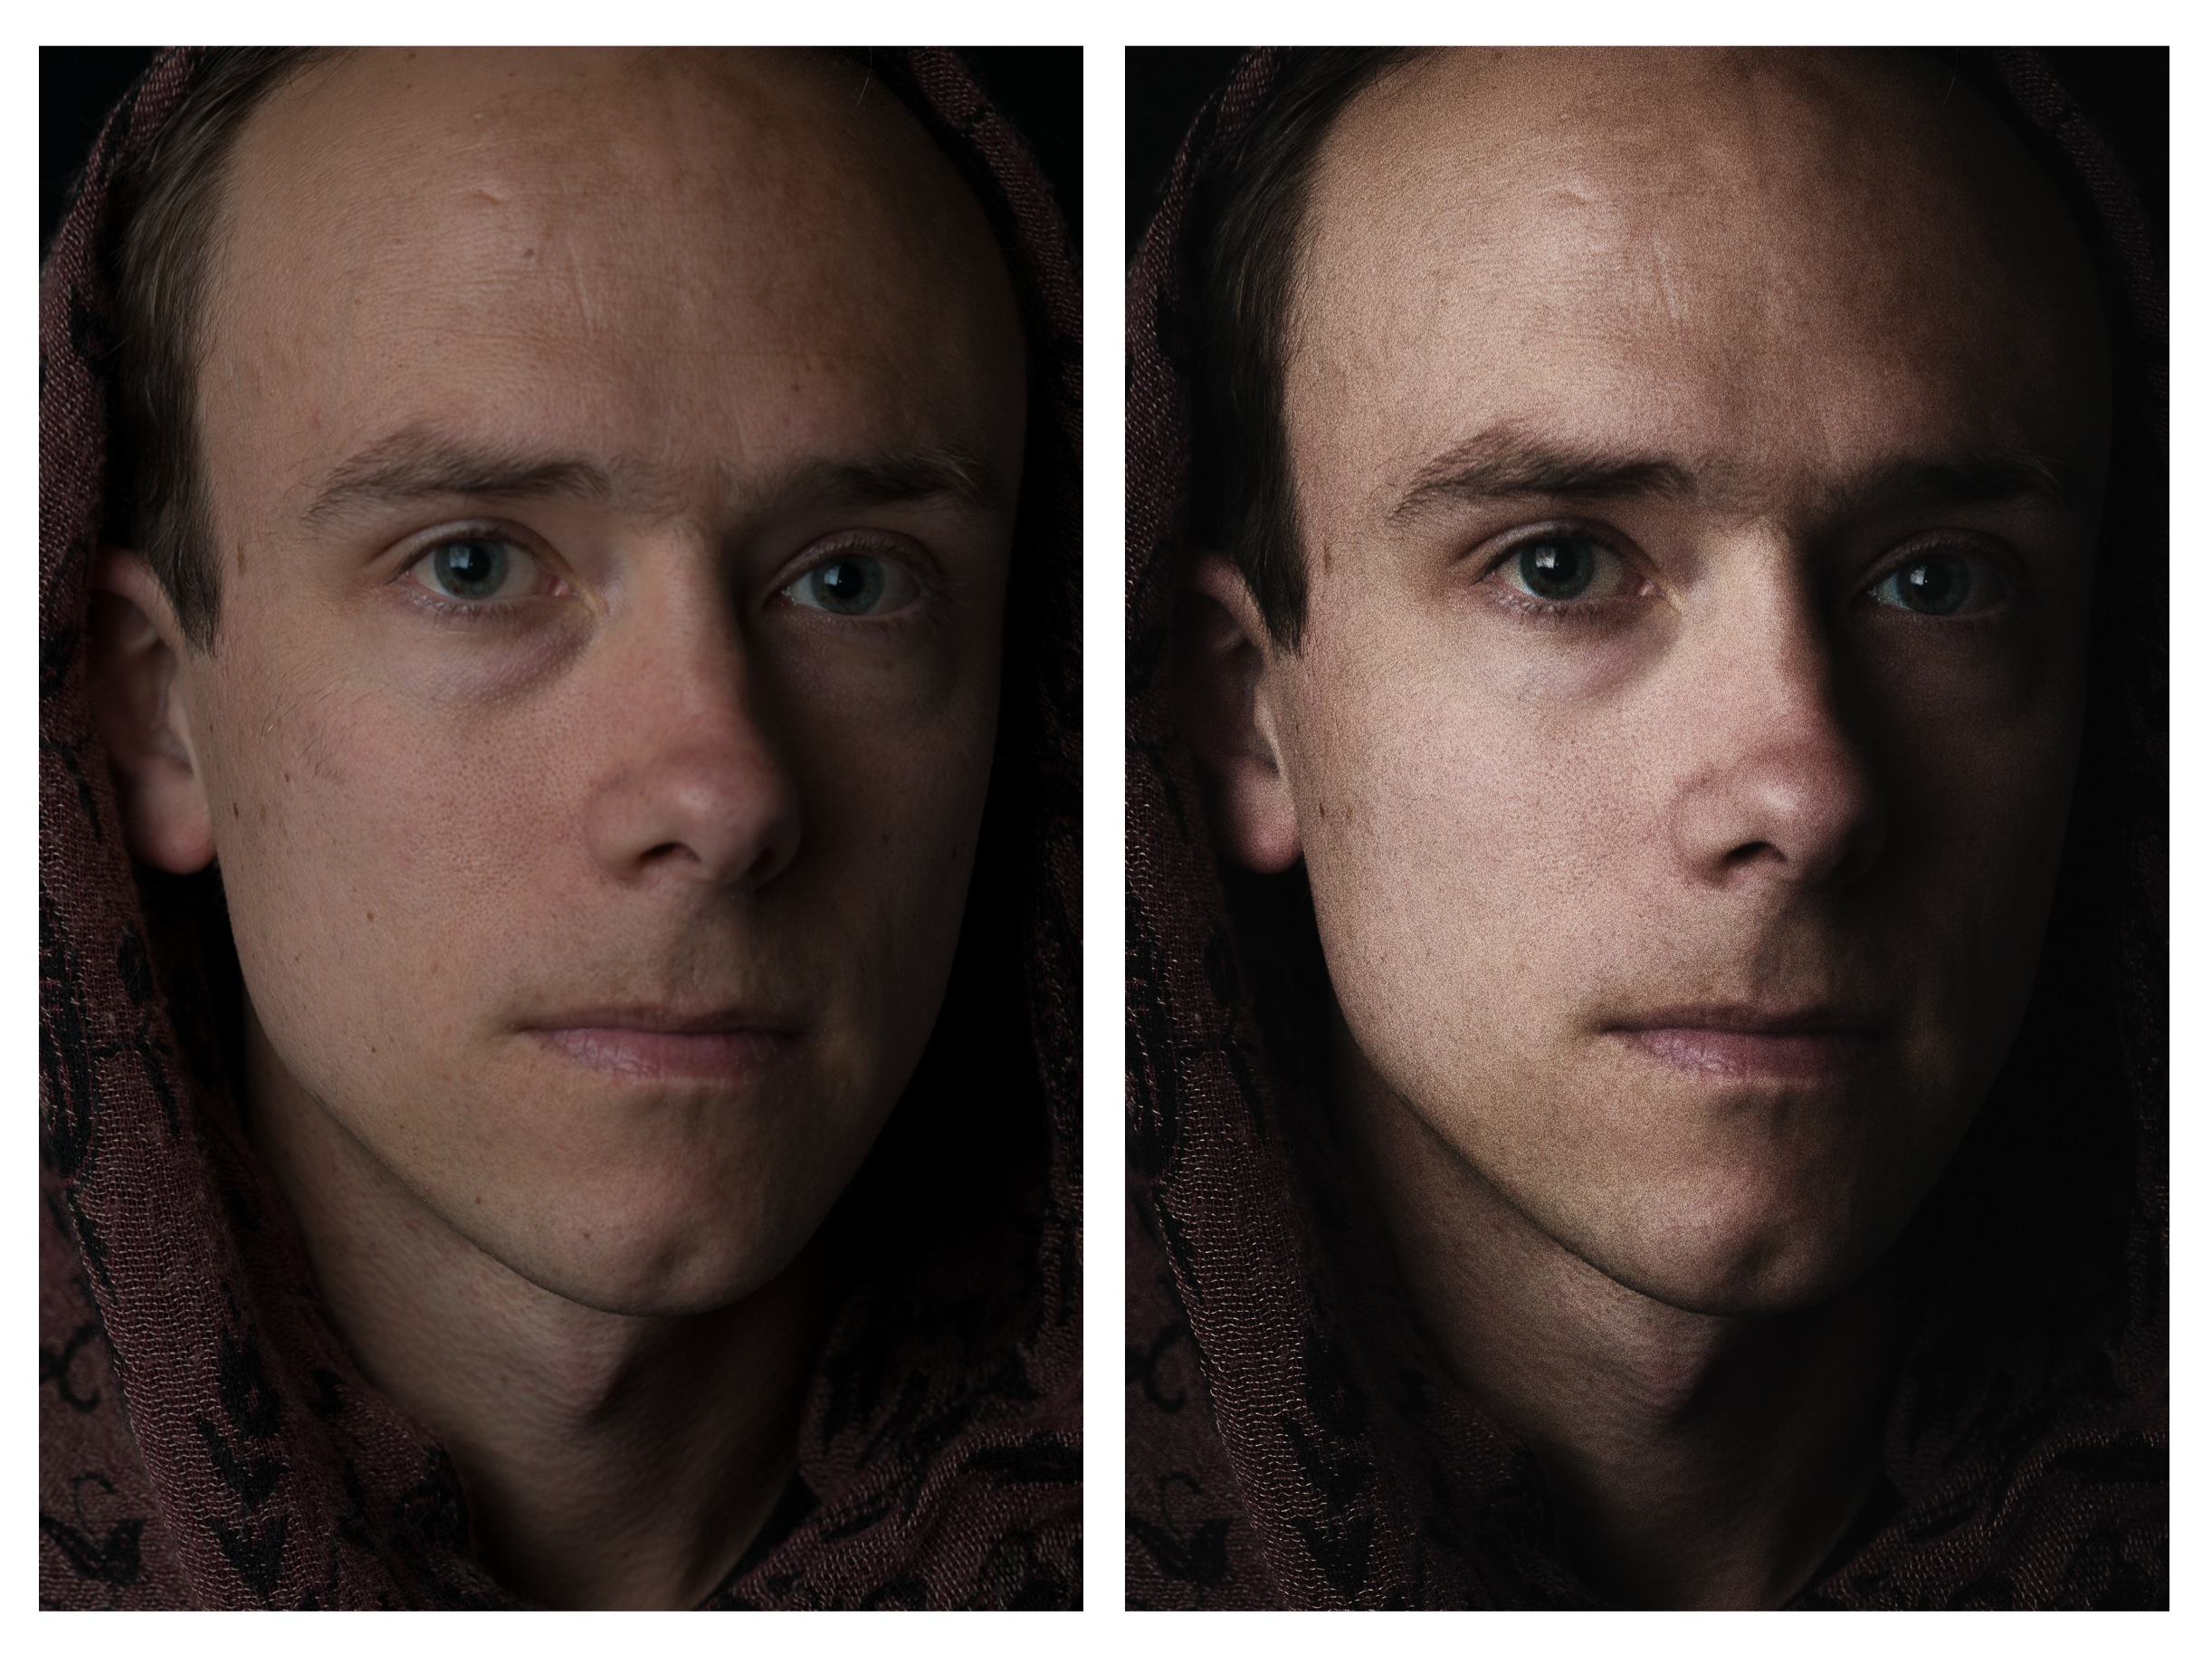 My image of Brian in-camera and the final product.